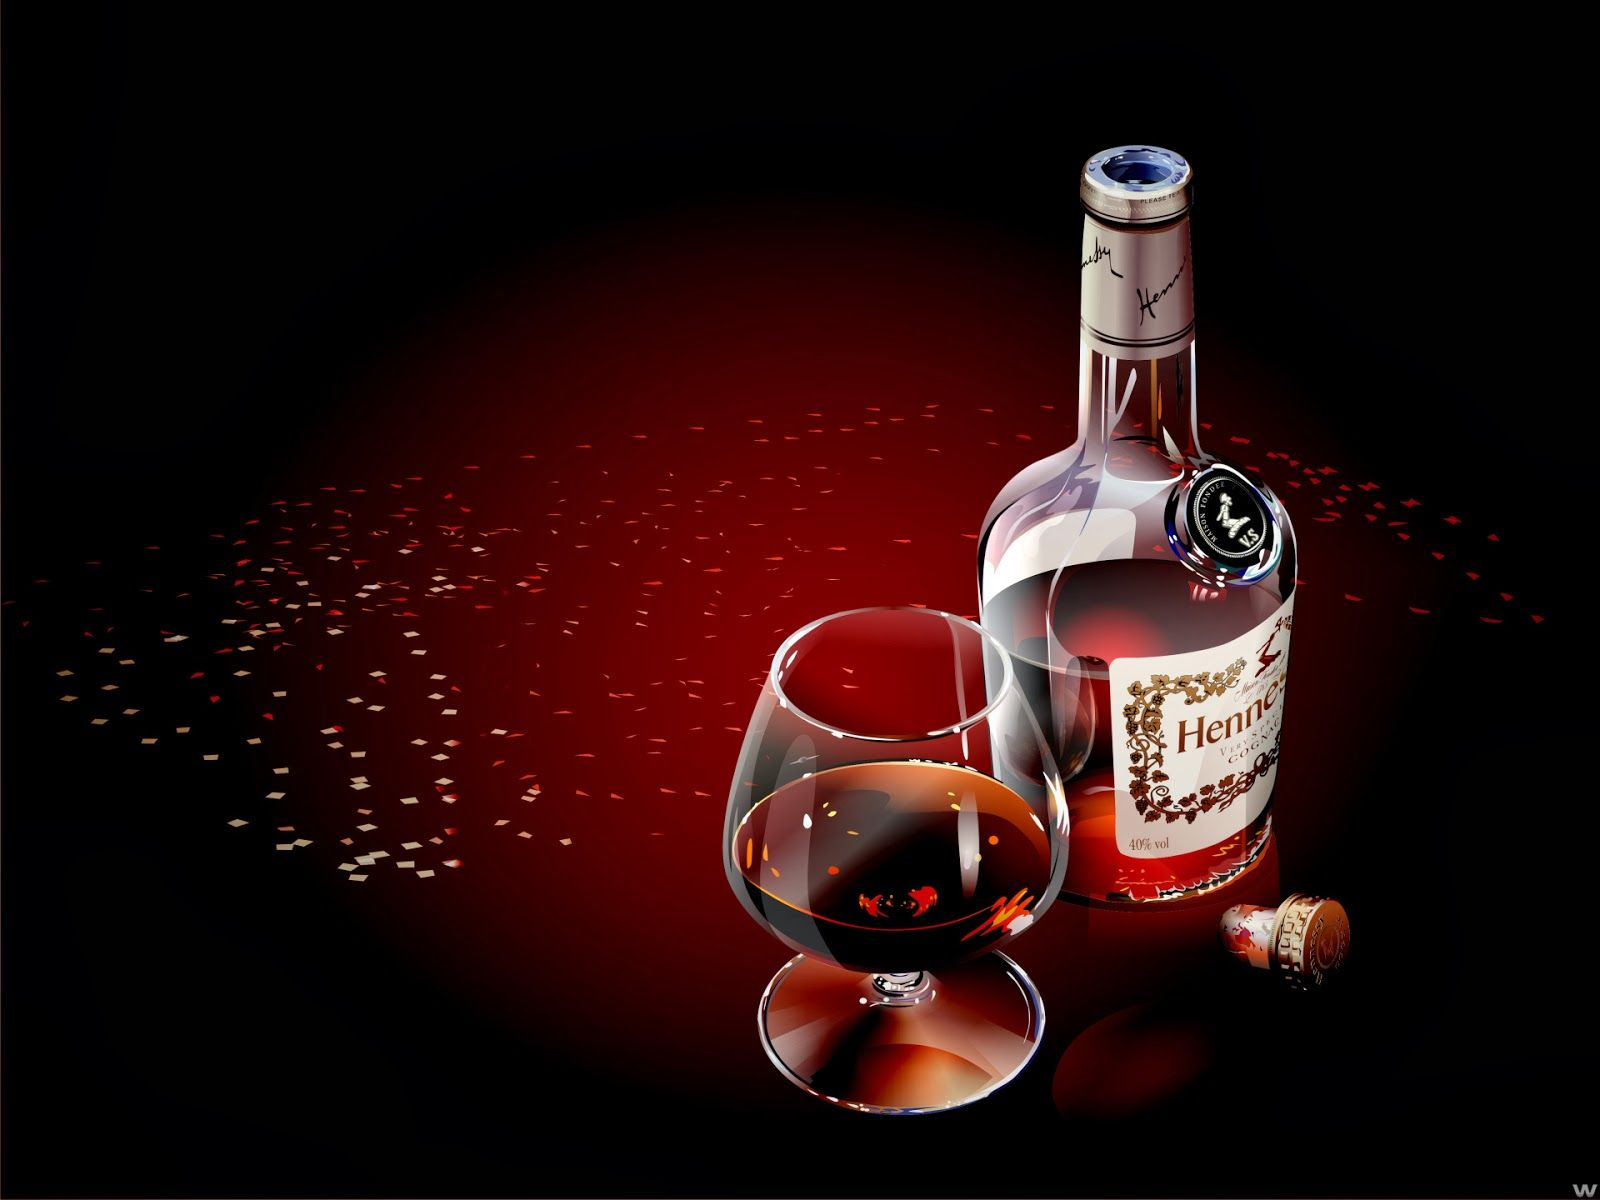 Related Image Wine Wallpaper Red Wine Bottle Red Wine